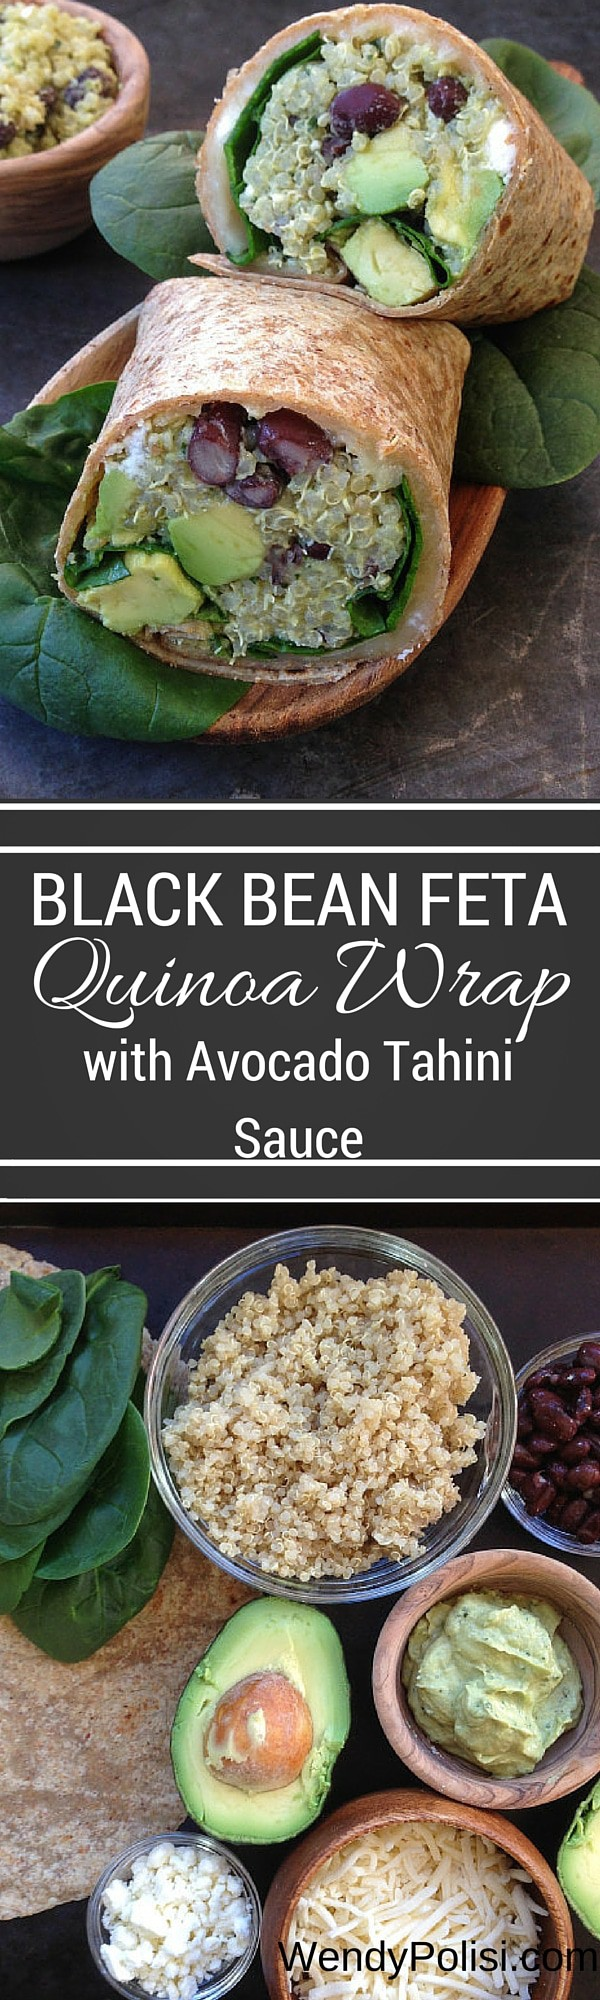 Black Bean, Feta & Avocado Quinoa Wrap with Avocado-Tahini Dip - These black bean and quinoa wraps make a fabulous vegetarian lunch!  With feta, Monterey jack, avocado and a flavor-filled Avocado-Tahini Dip, even the meat eaters will be thrilled! #quinoa #quinoawrap #healthyrecipe #avocado #tahini #lunchrecipe #vegetarian